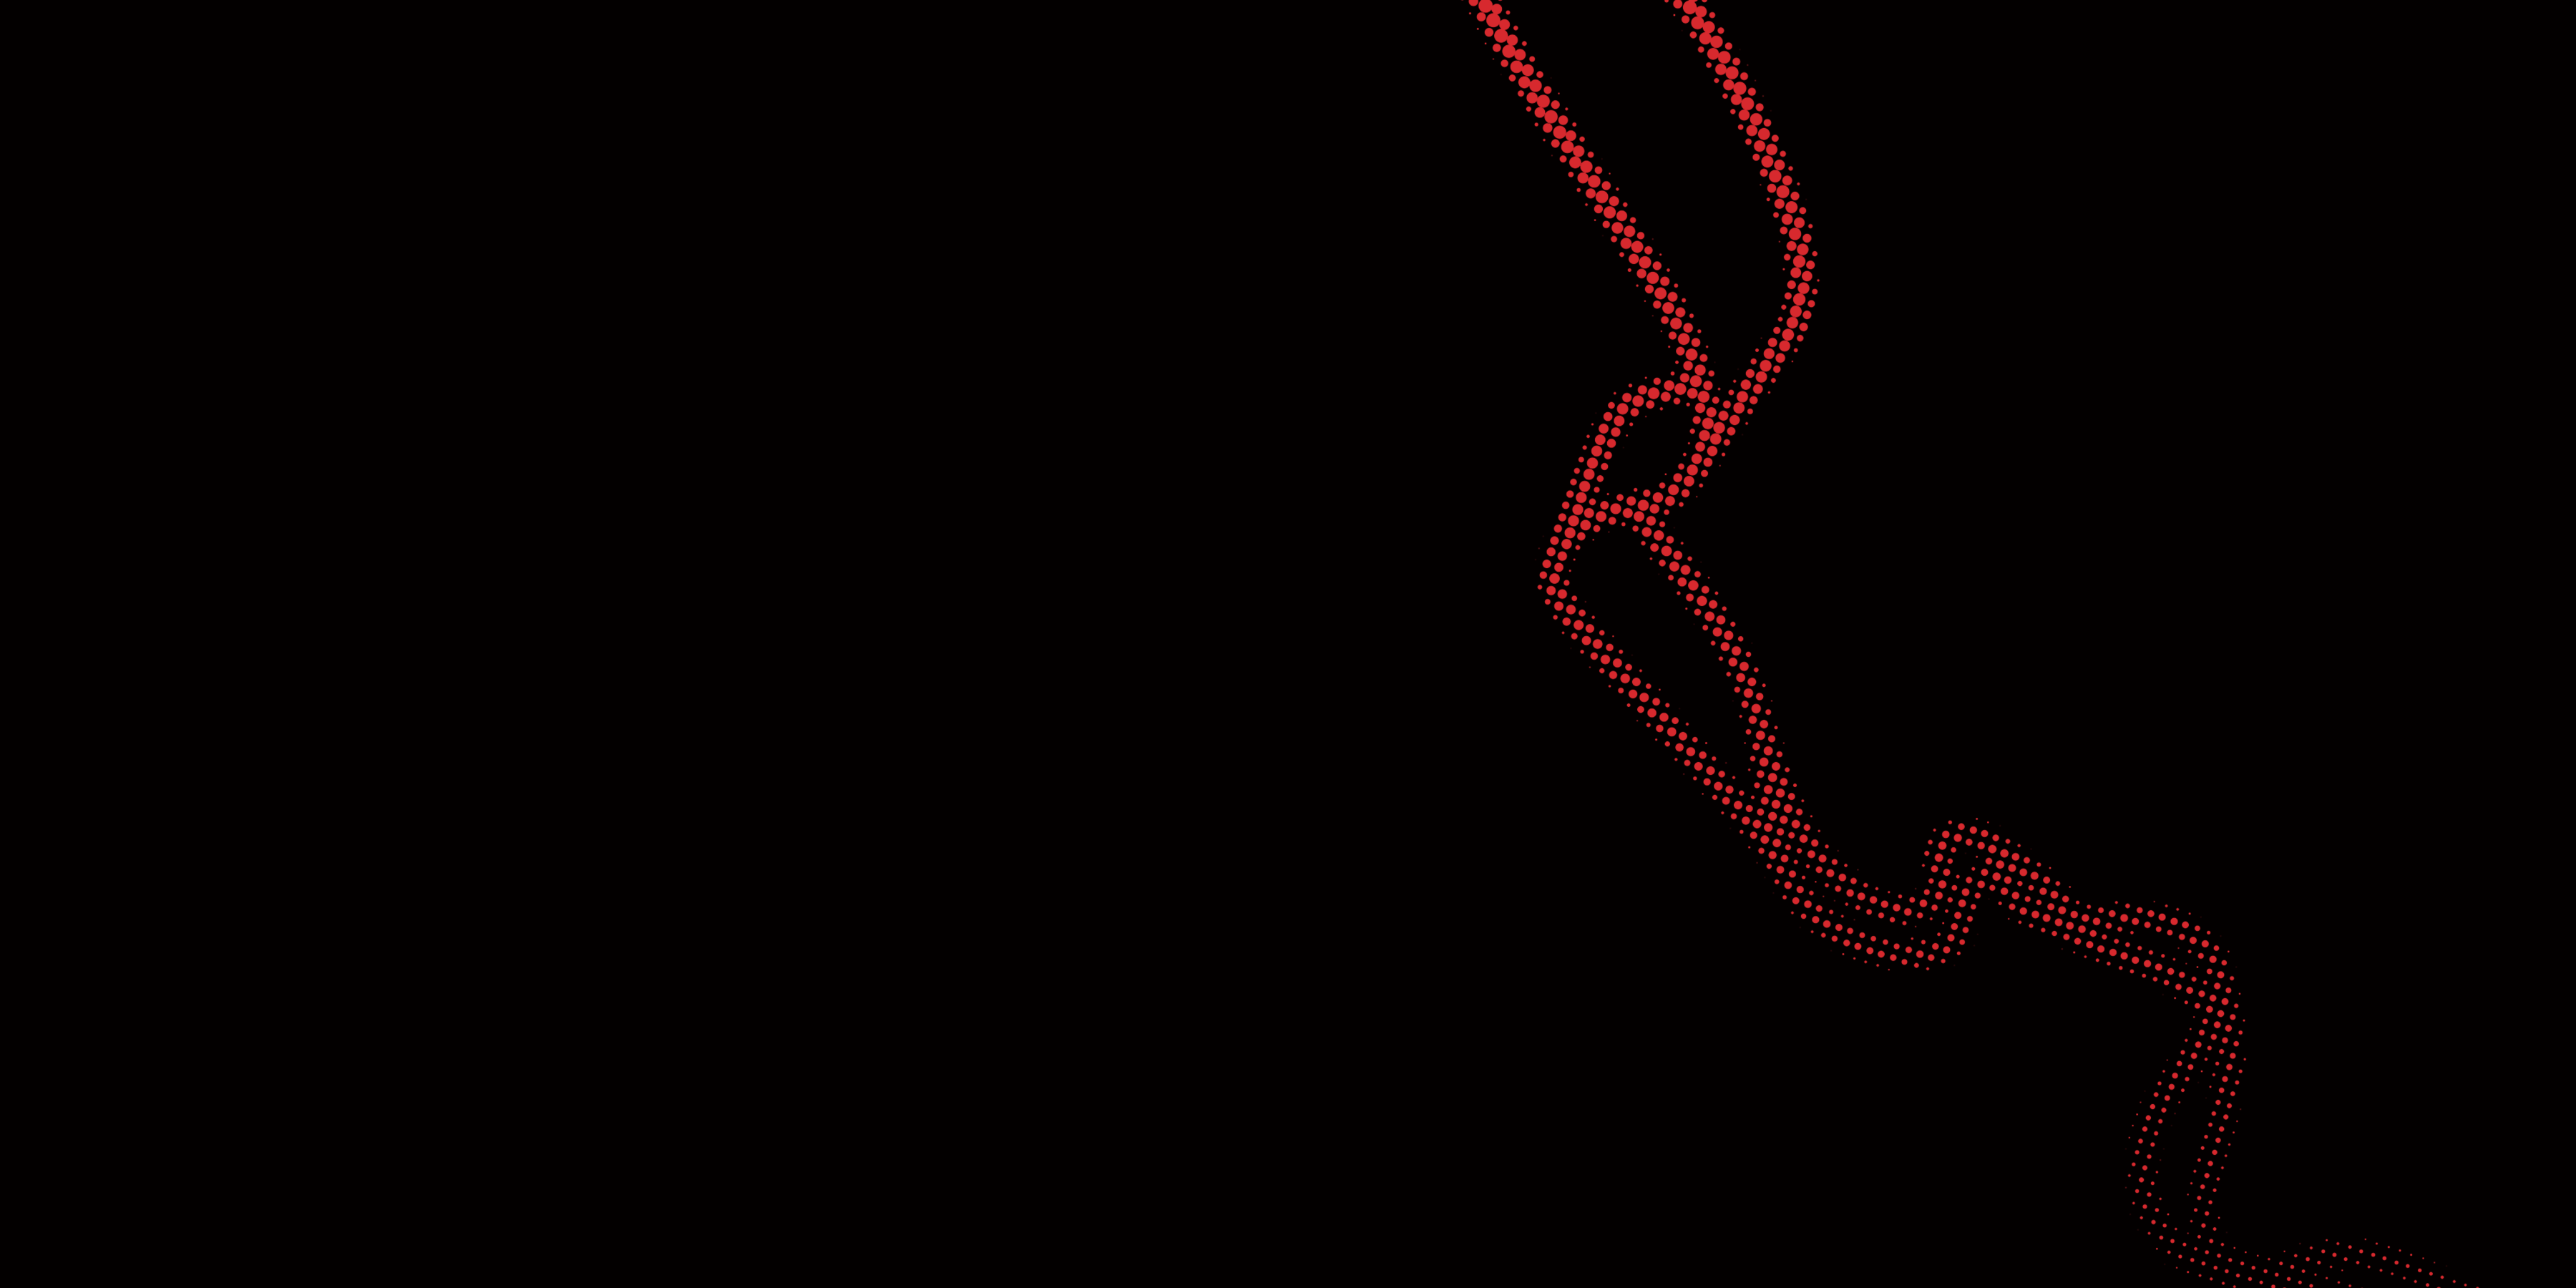 A black background with a red pixelated squiggle design